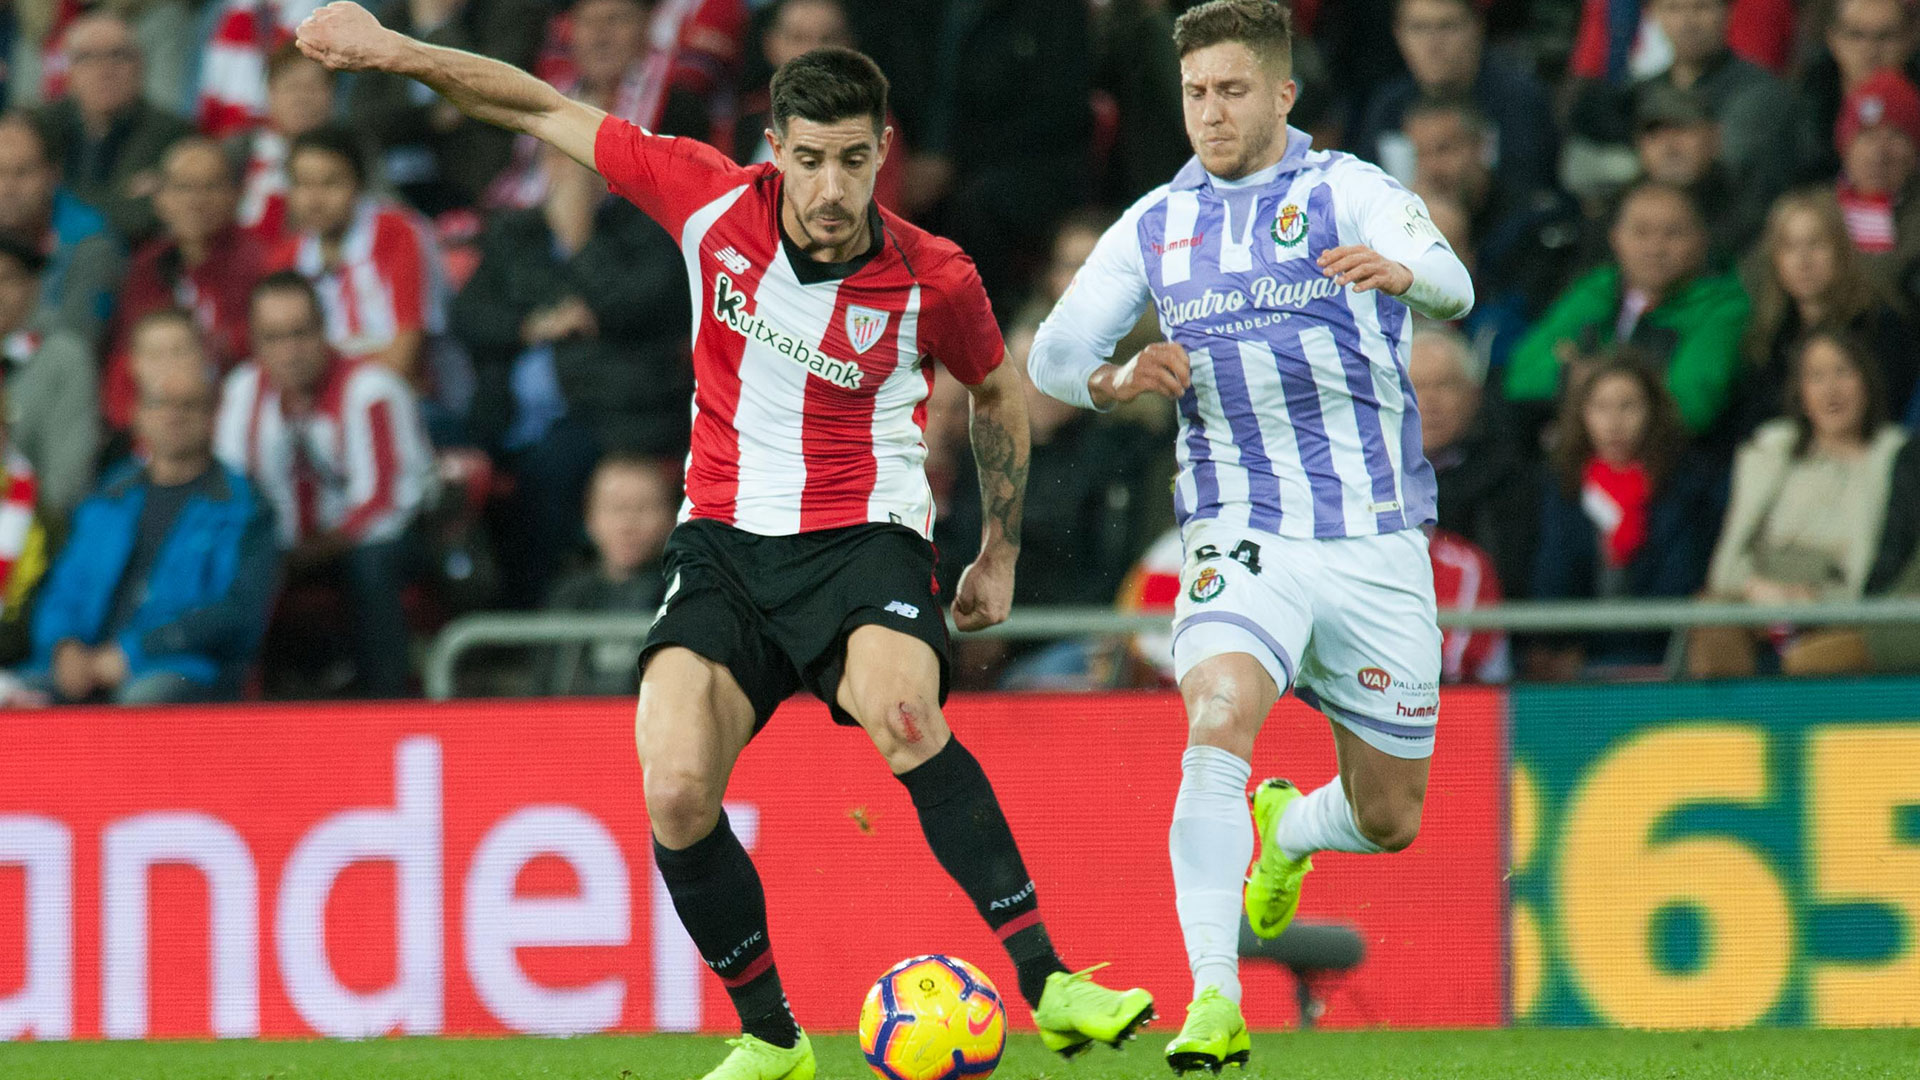 Real Valladolid-Athletic Club: retirada de entradas